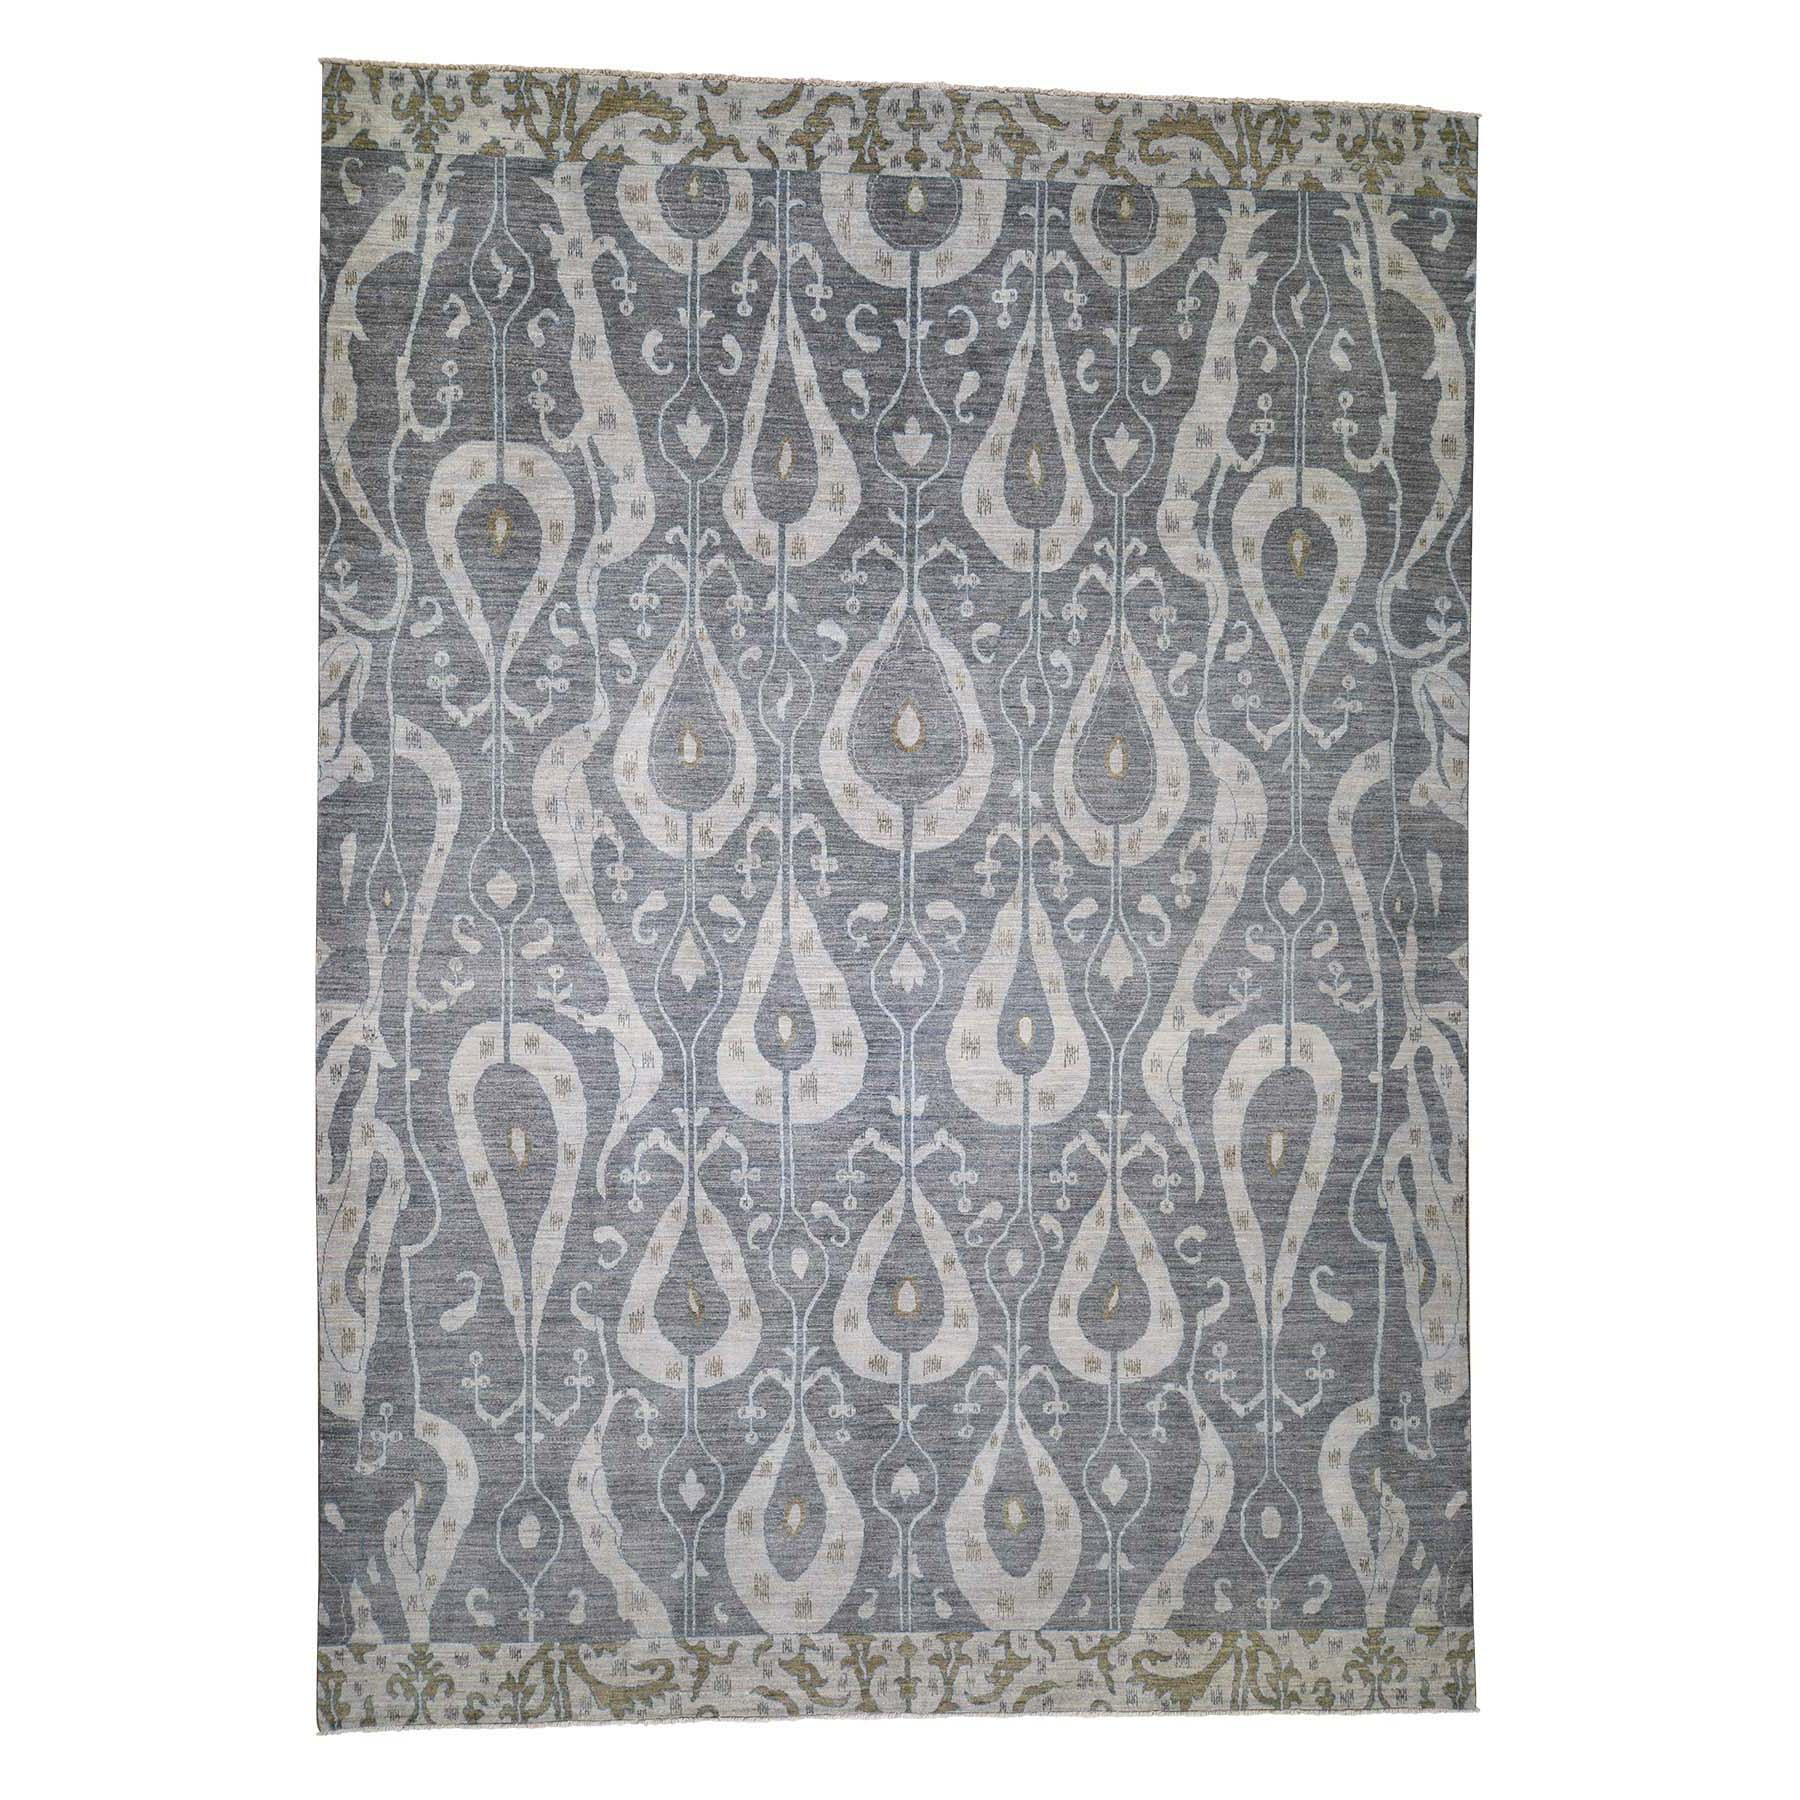 ikat and suzani design rugs LUV403074